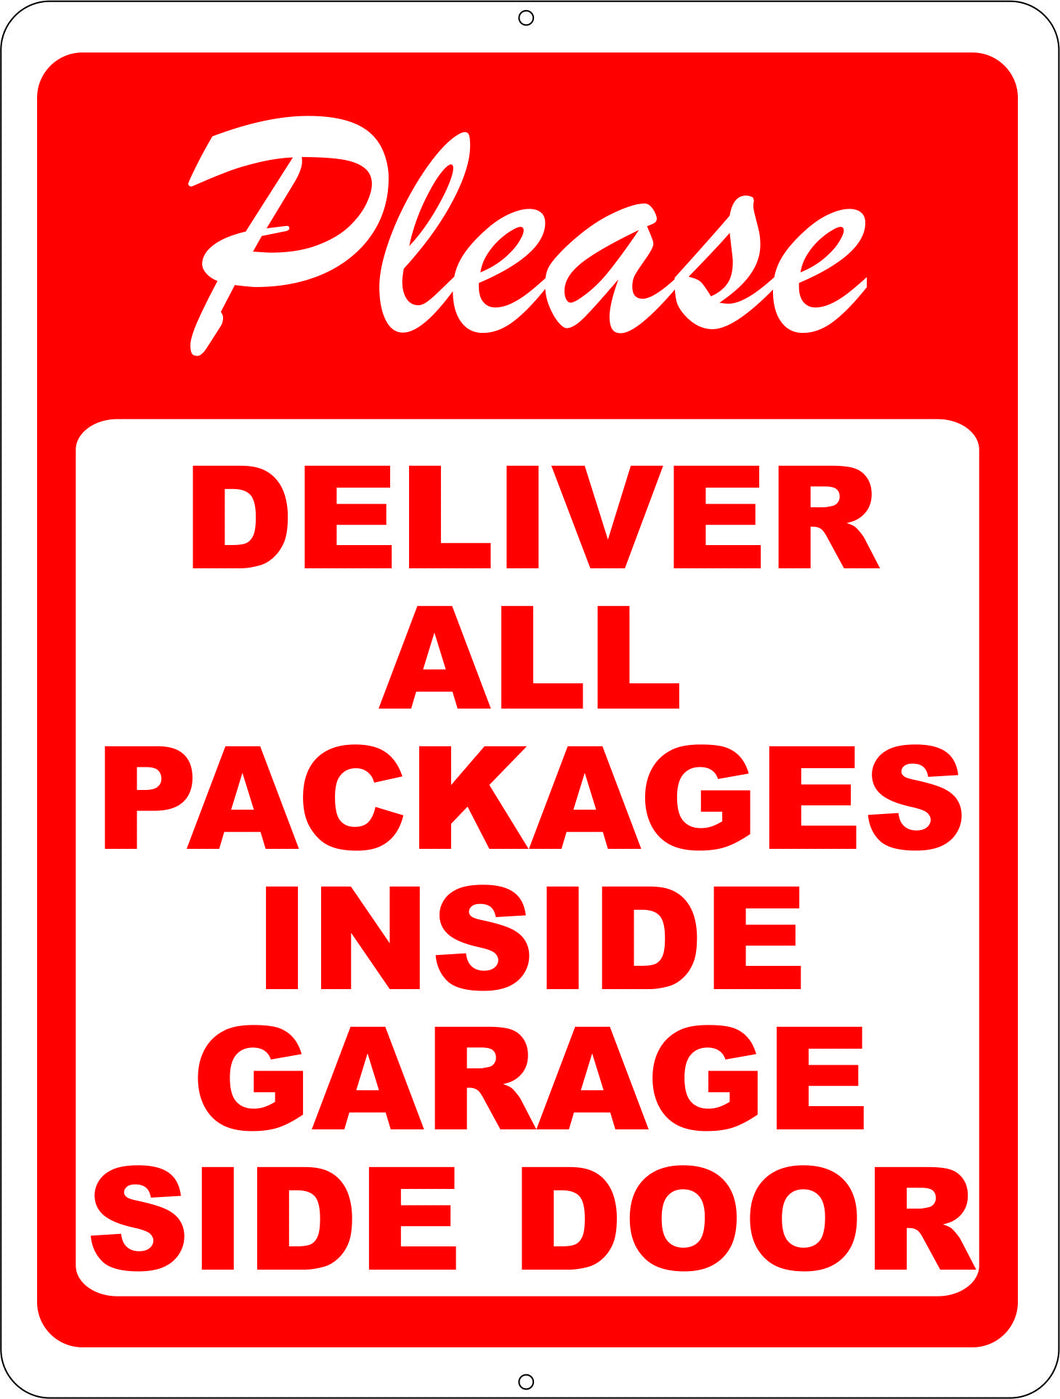 Please Deliver All Packages Inside Garage Side Door Sign - Signs & Decals by SalaGraphics